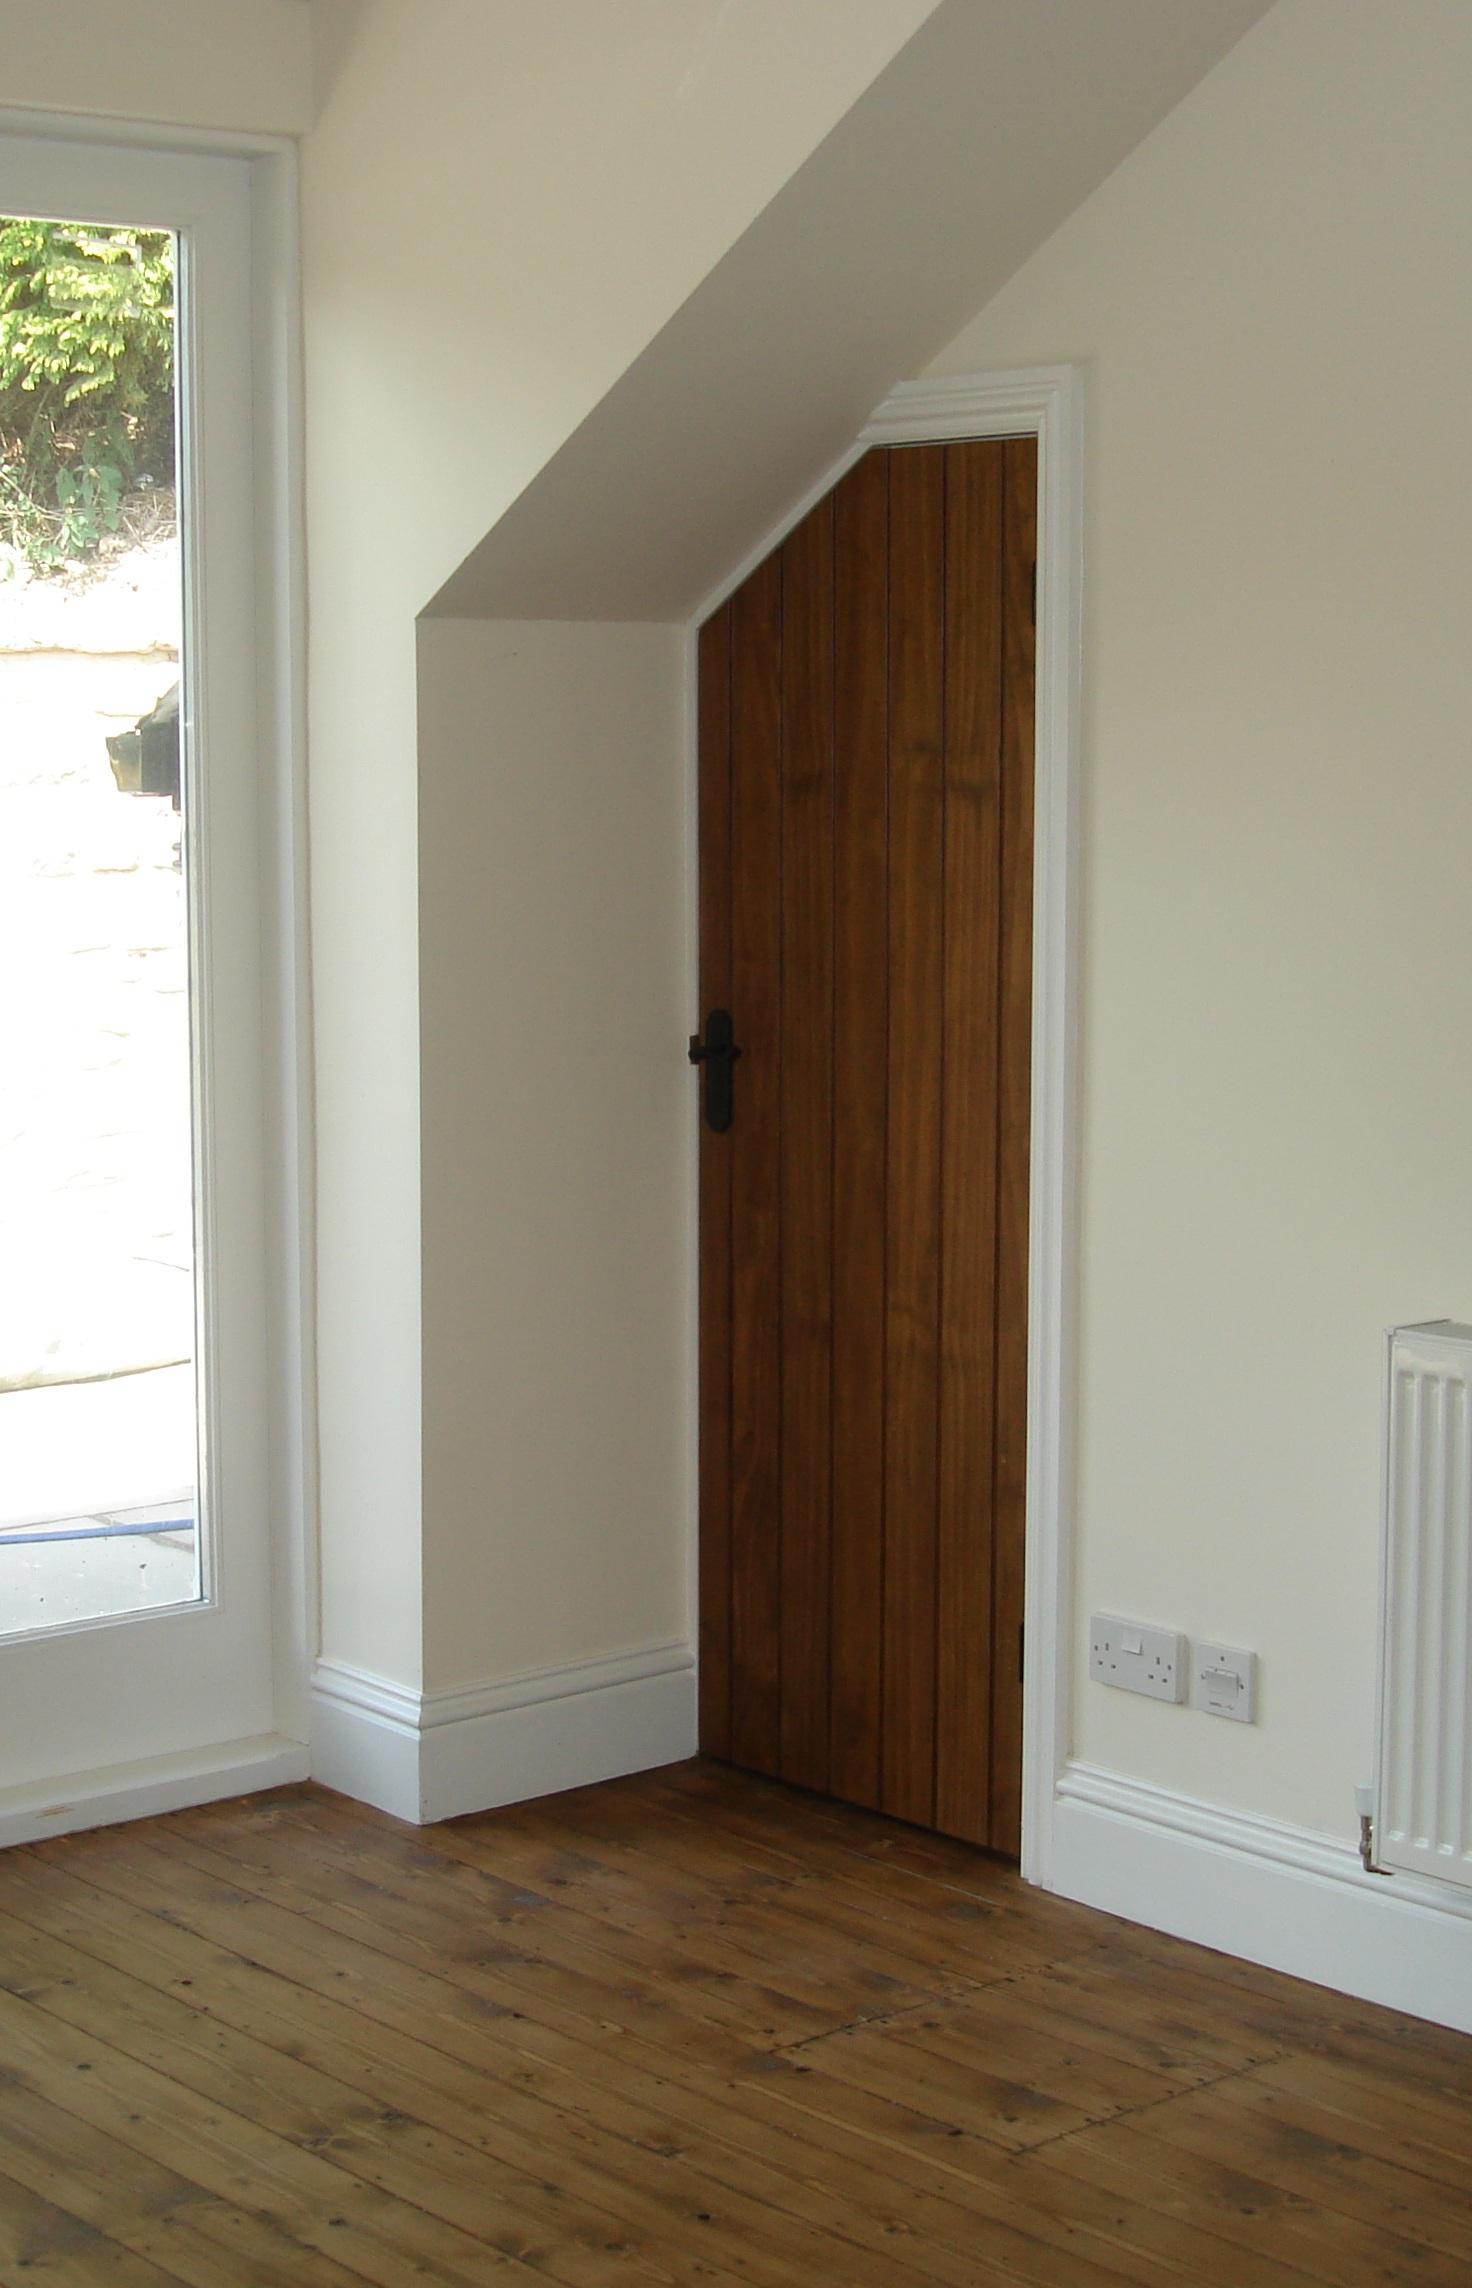 Replacement of internal doors with frames is a difficult task